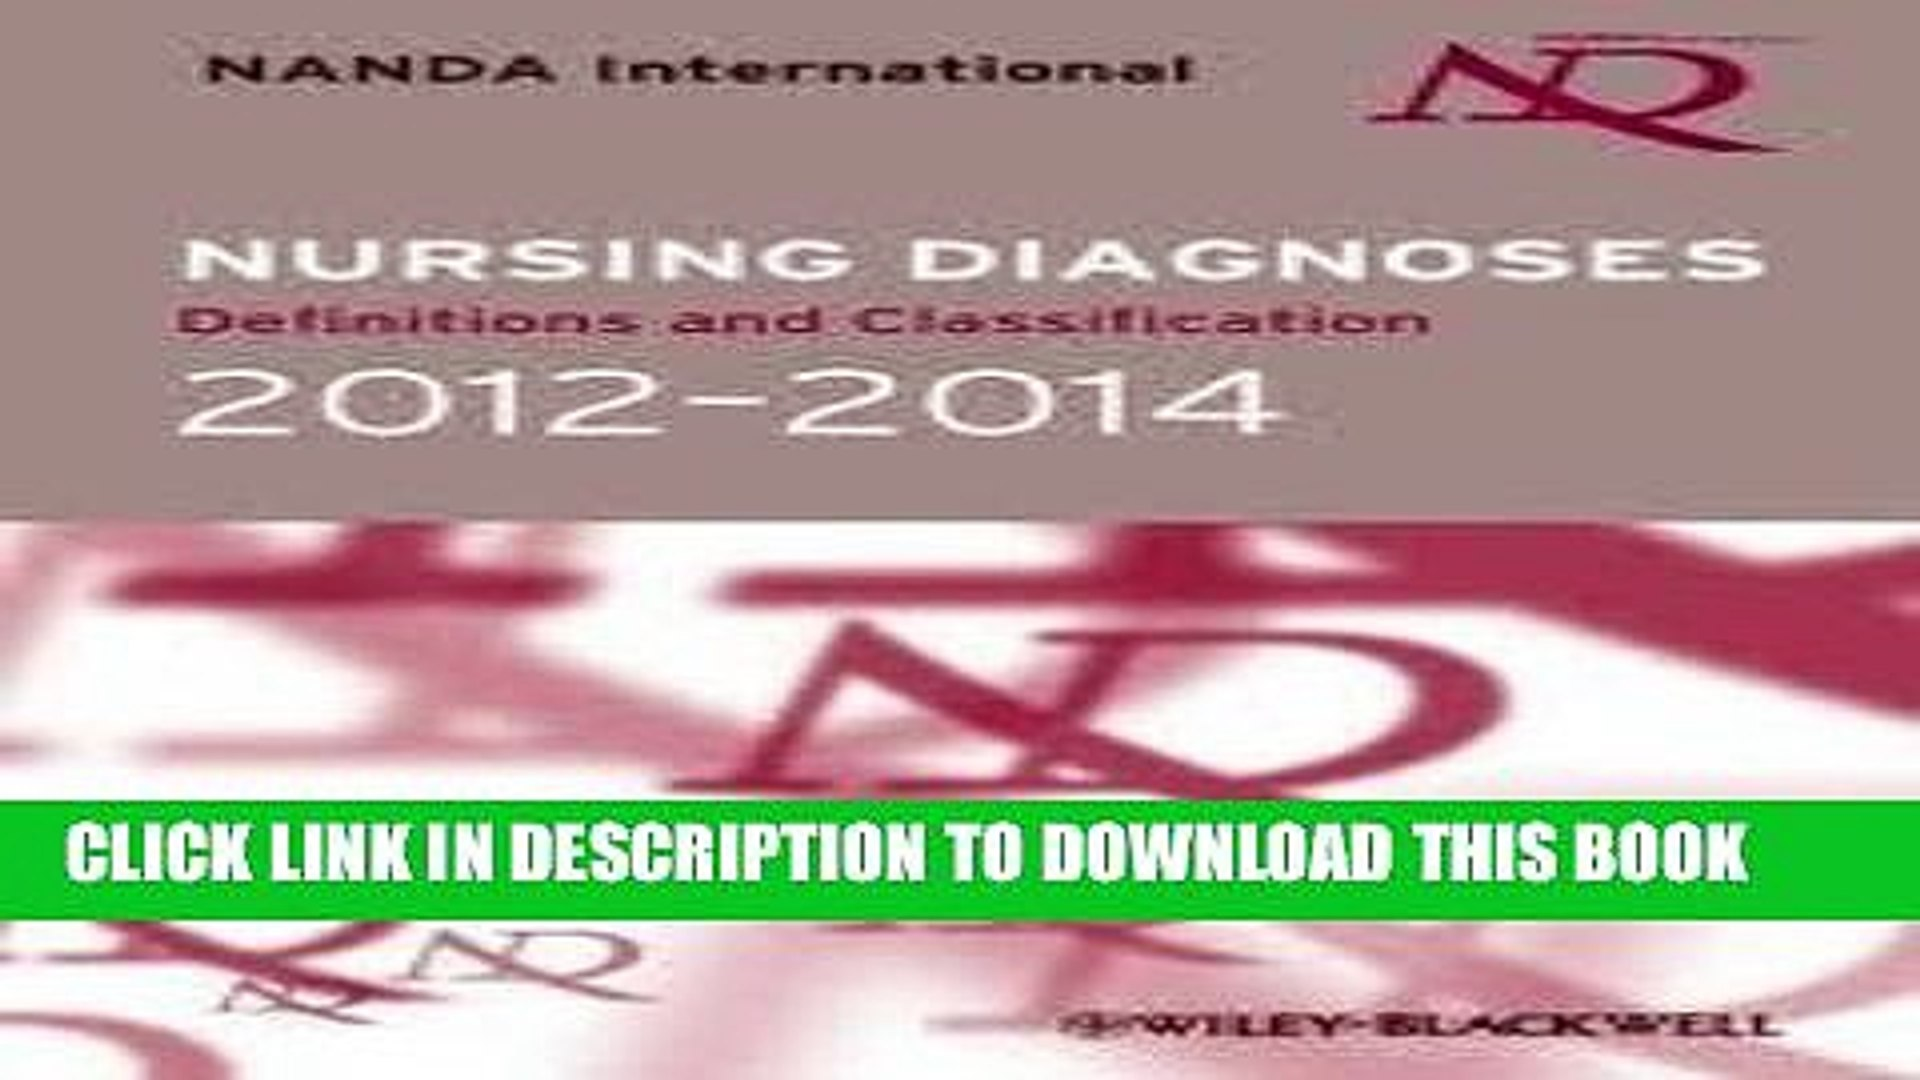 Nursing Diagnoses 2012-14: Definitions and Classification